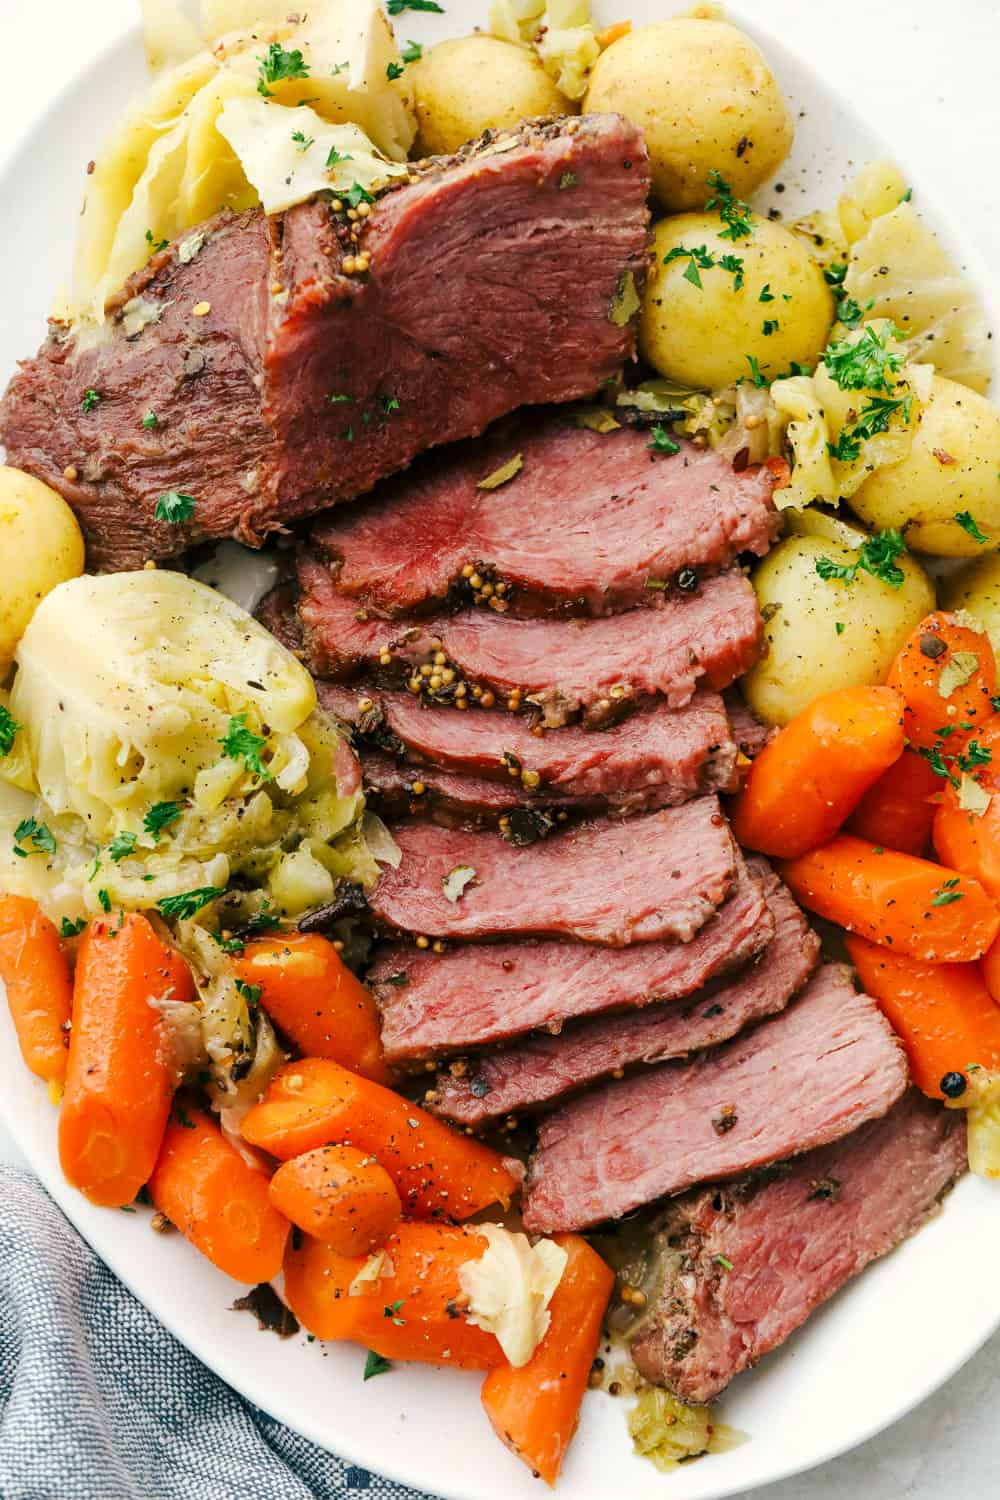 Corned beef, potatoes, cabbages, and carrots on a platter.